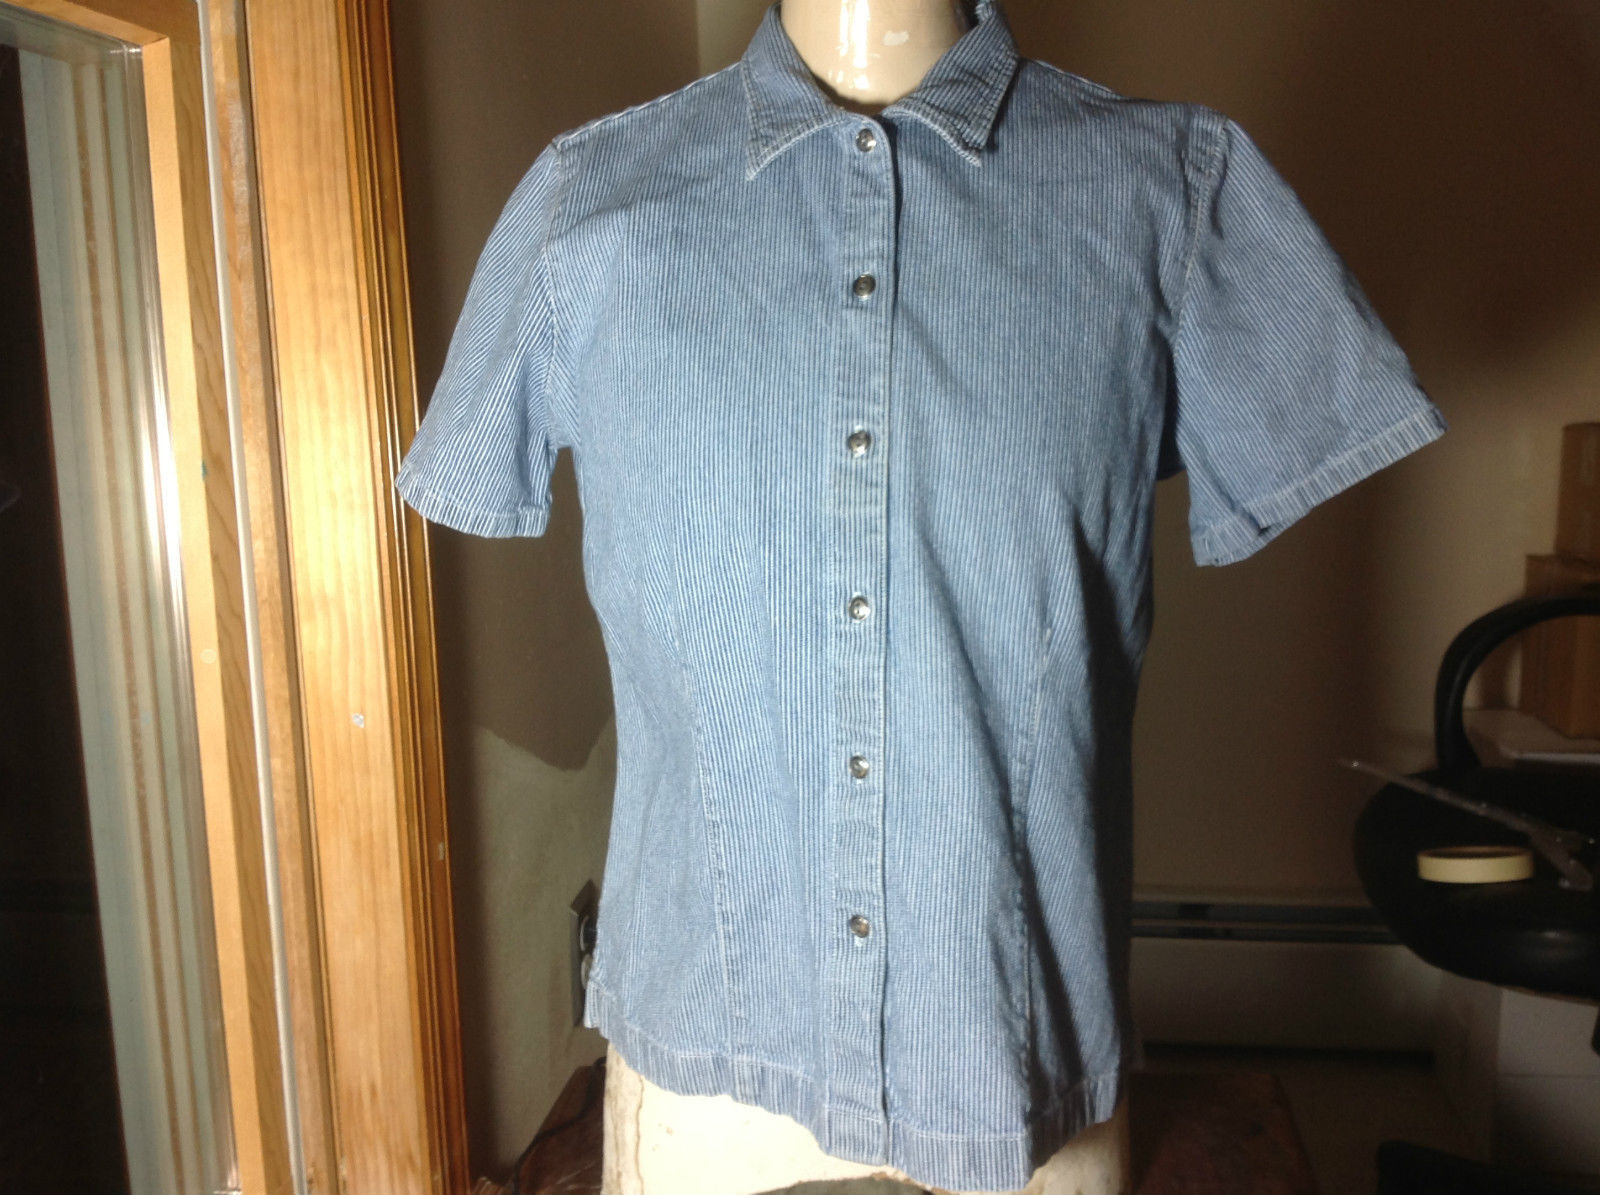 Classic Elements Blue Skinny White Striped Button Up Short Sleeve Shirt Size M